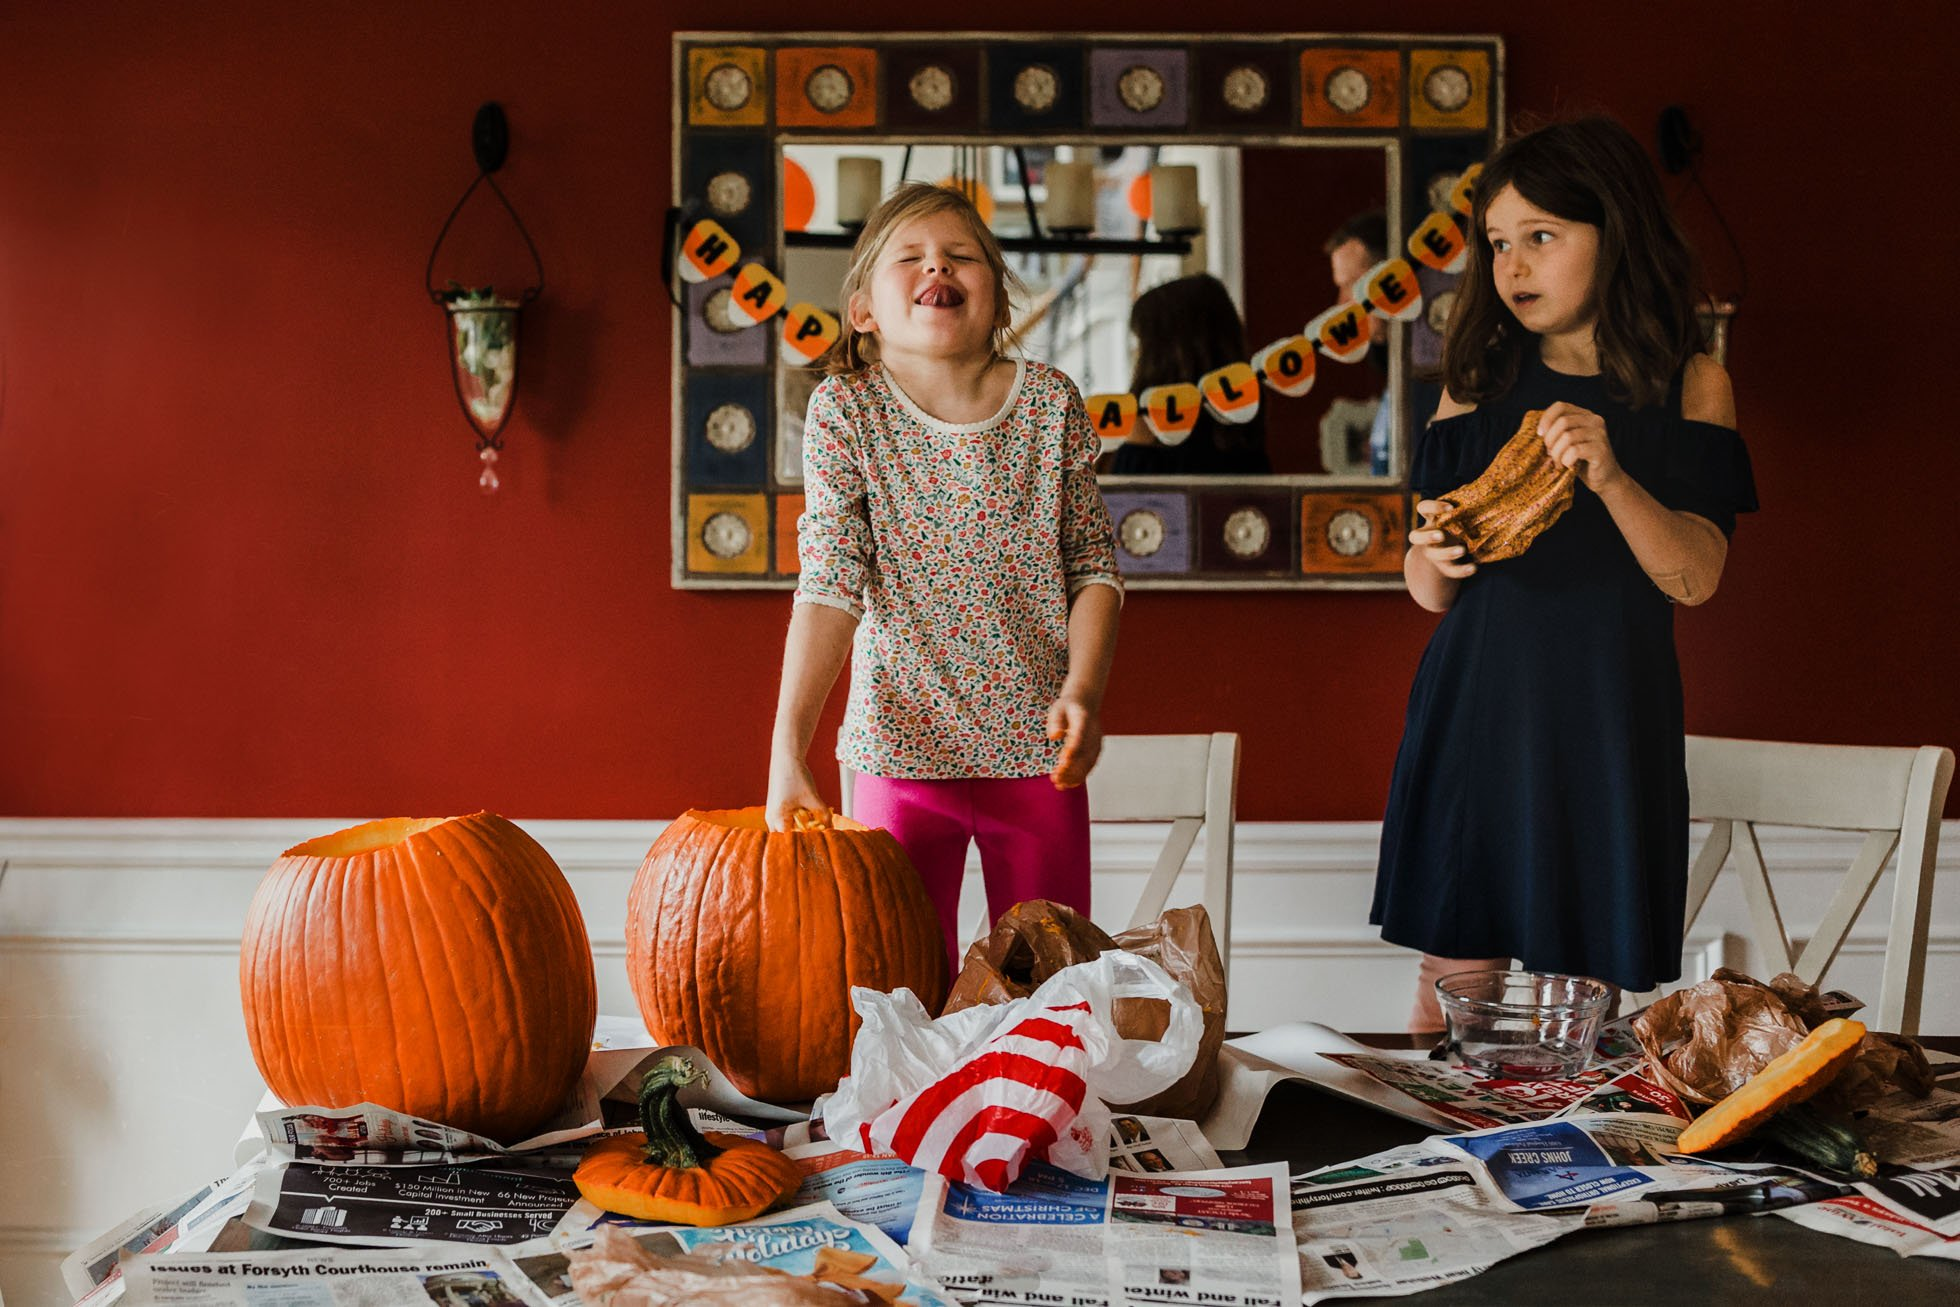 Girls carving pumpkins at home before Halloween